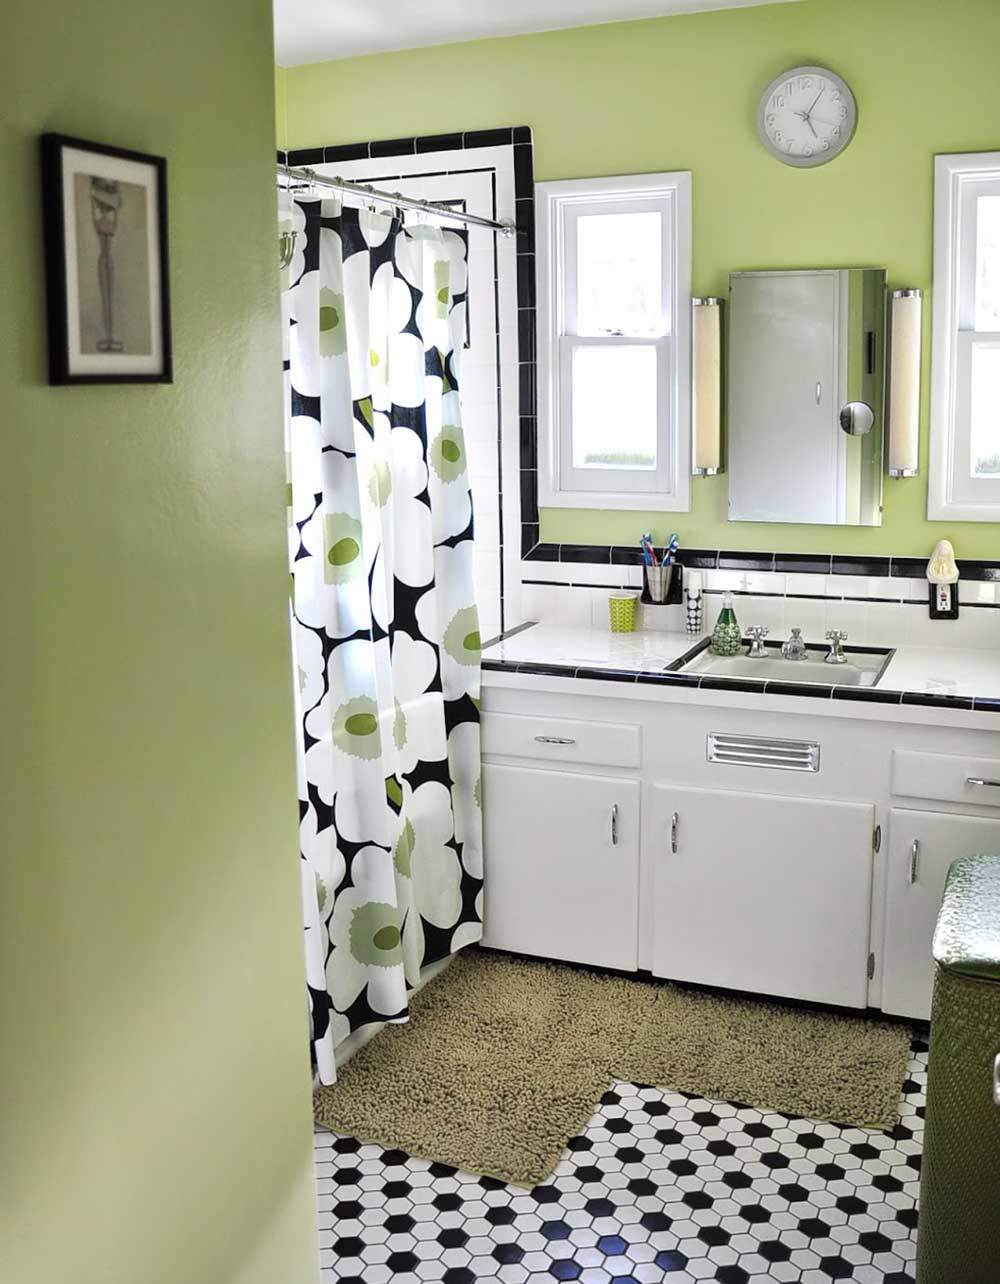 Black and white tile bathrooms done 6 different ways for Bathroom fashion